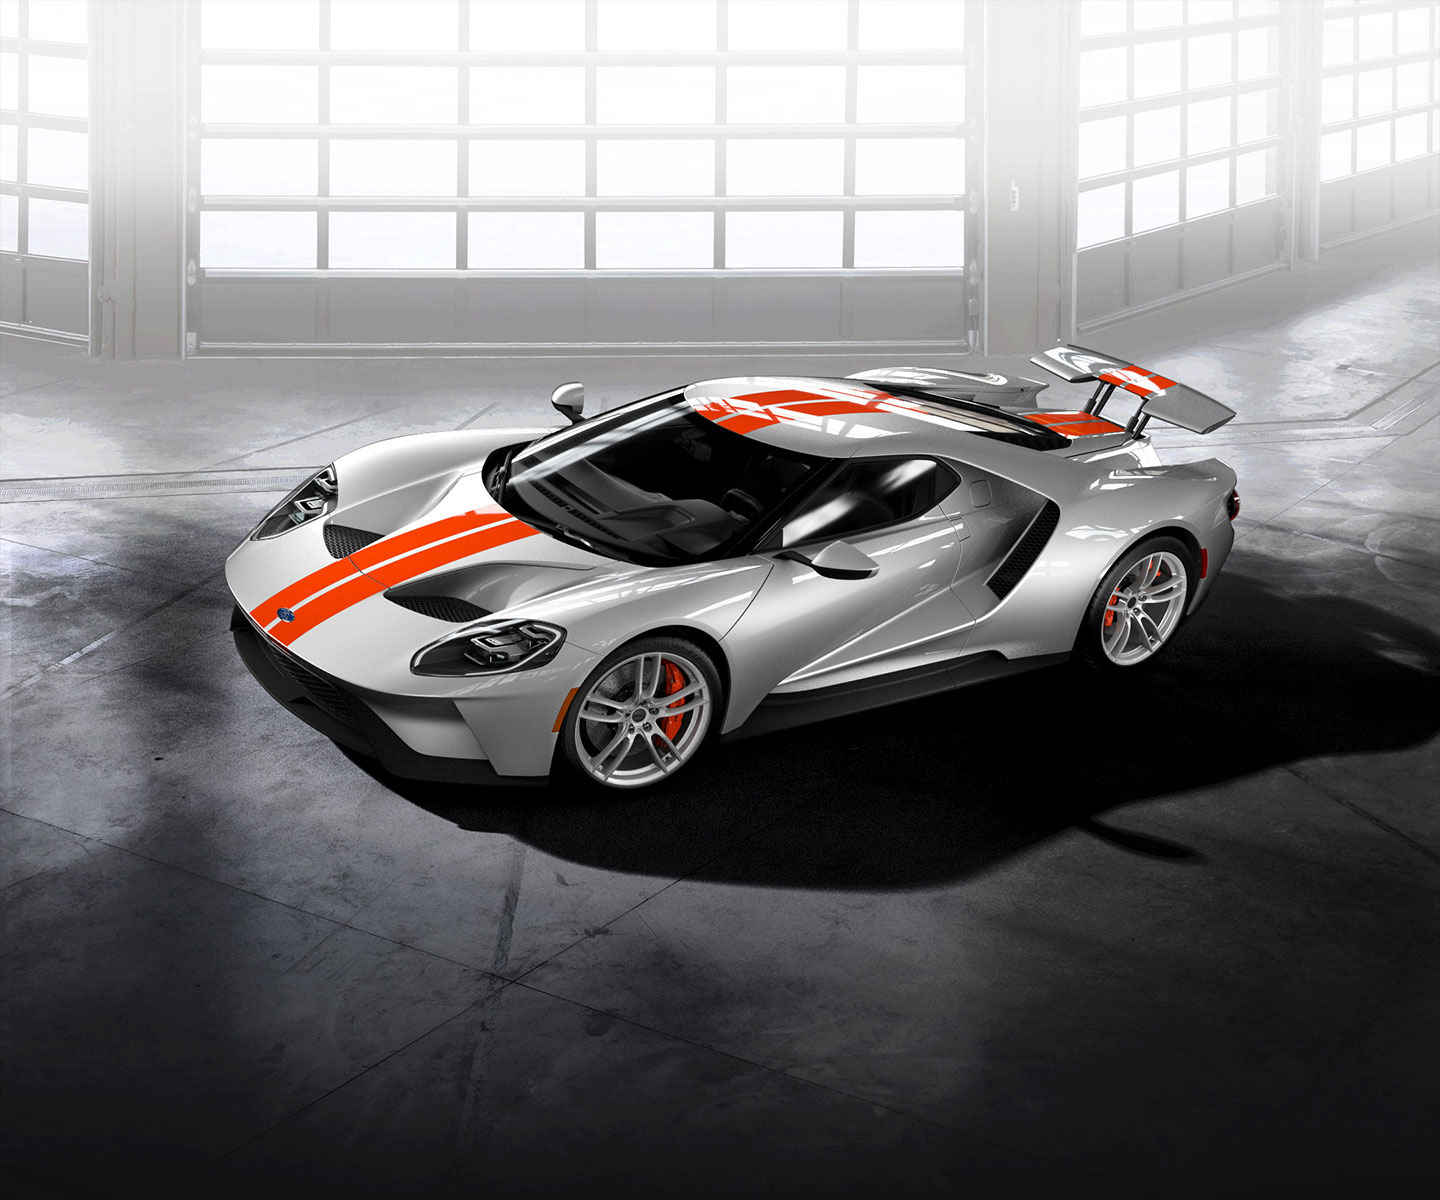 The Ingot Silver Competition Orange Ford Gt In The Photos Below Is One Of Two Examples I Created Through The Configurator